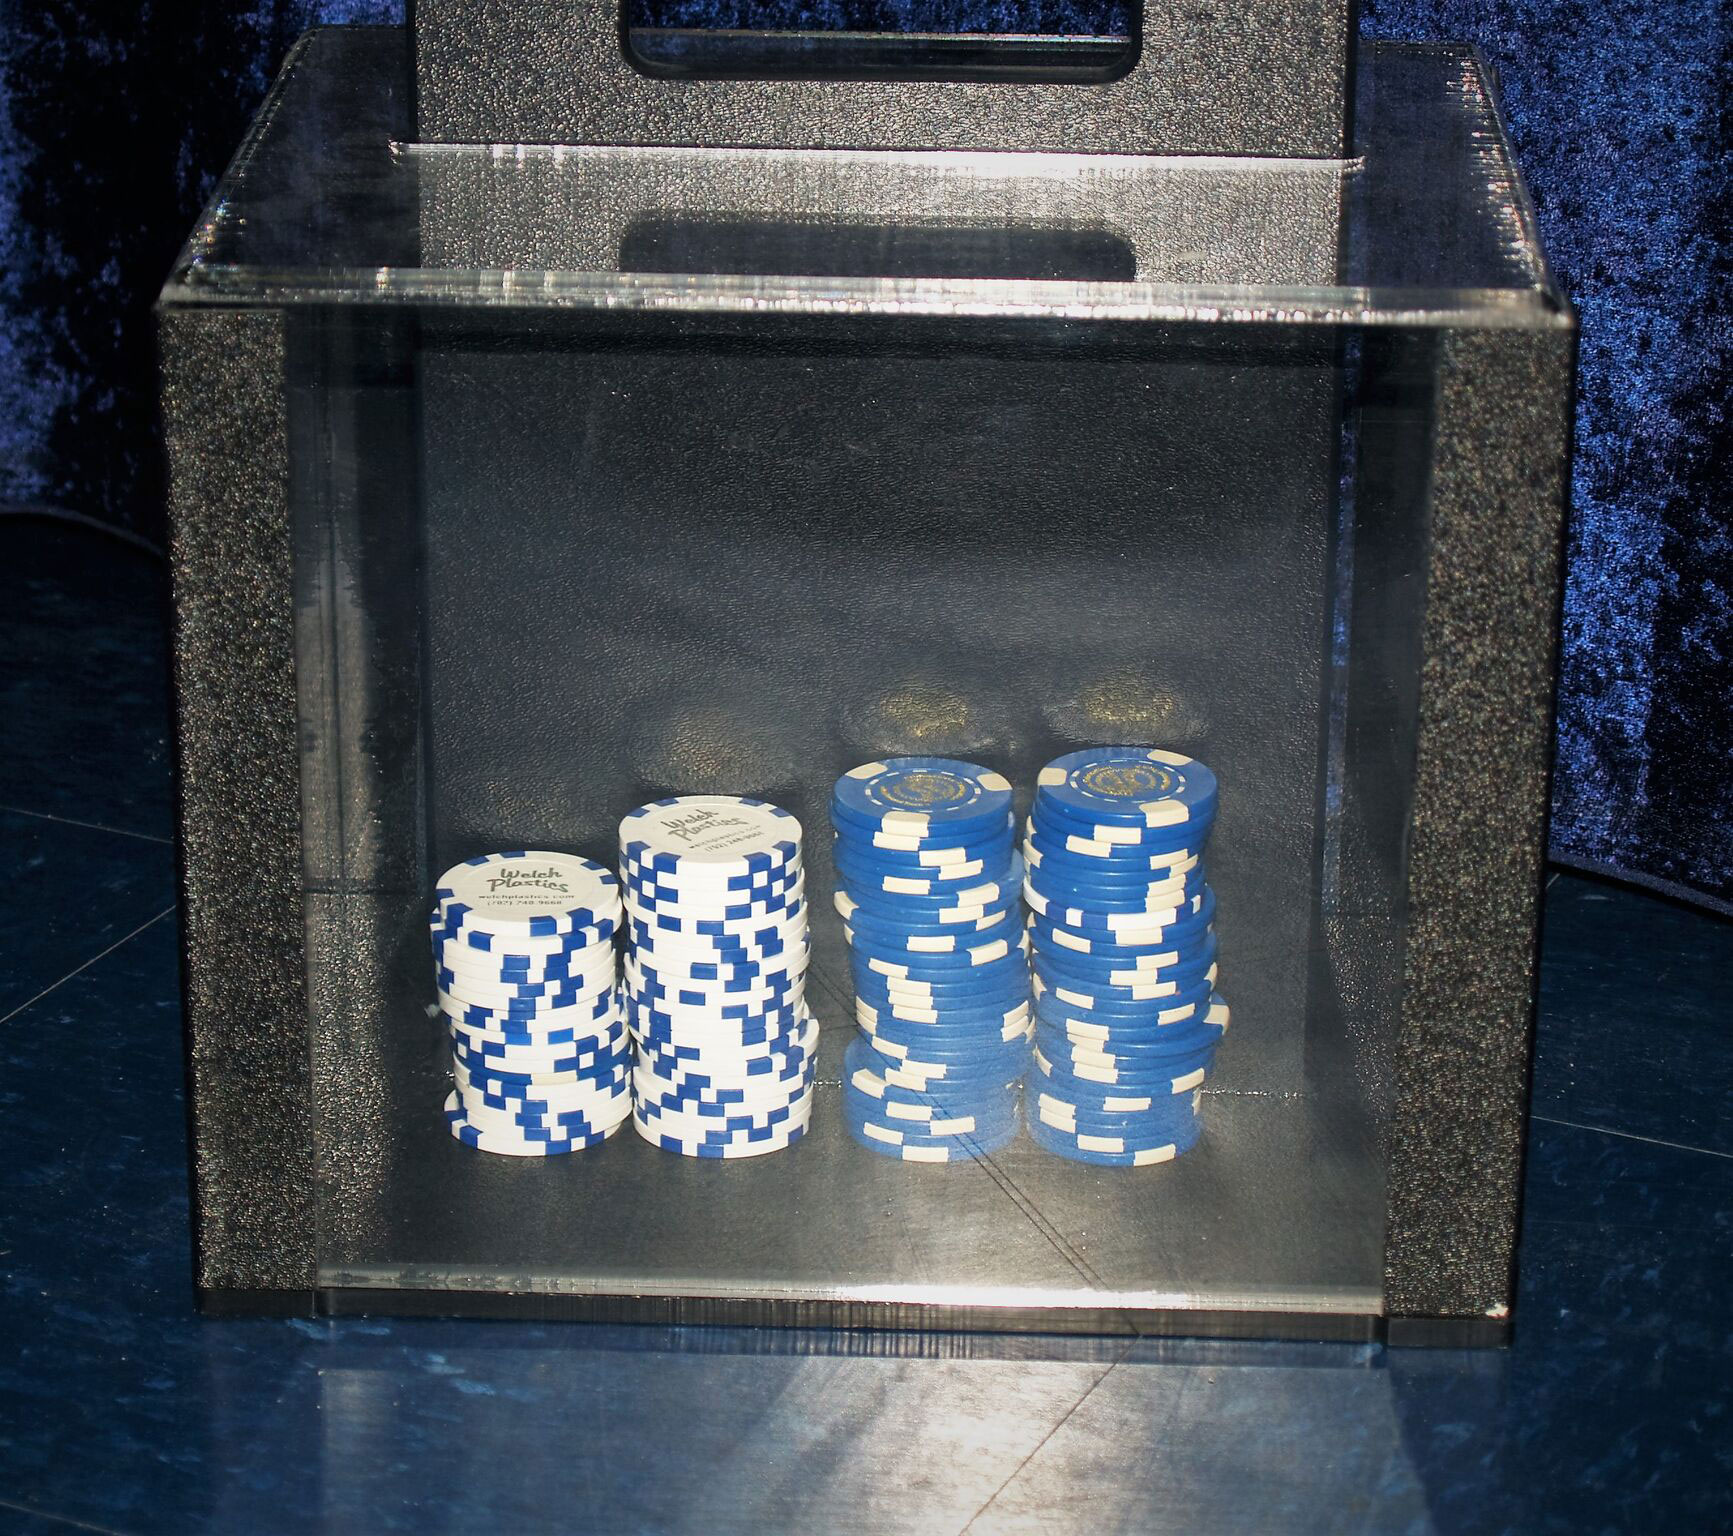 Casino Chip Case with Chips